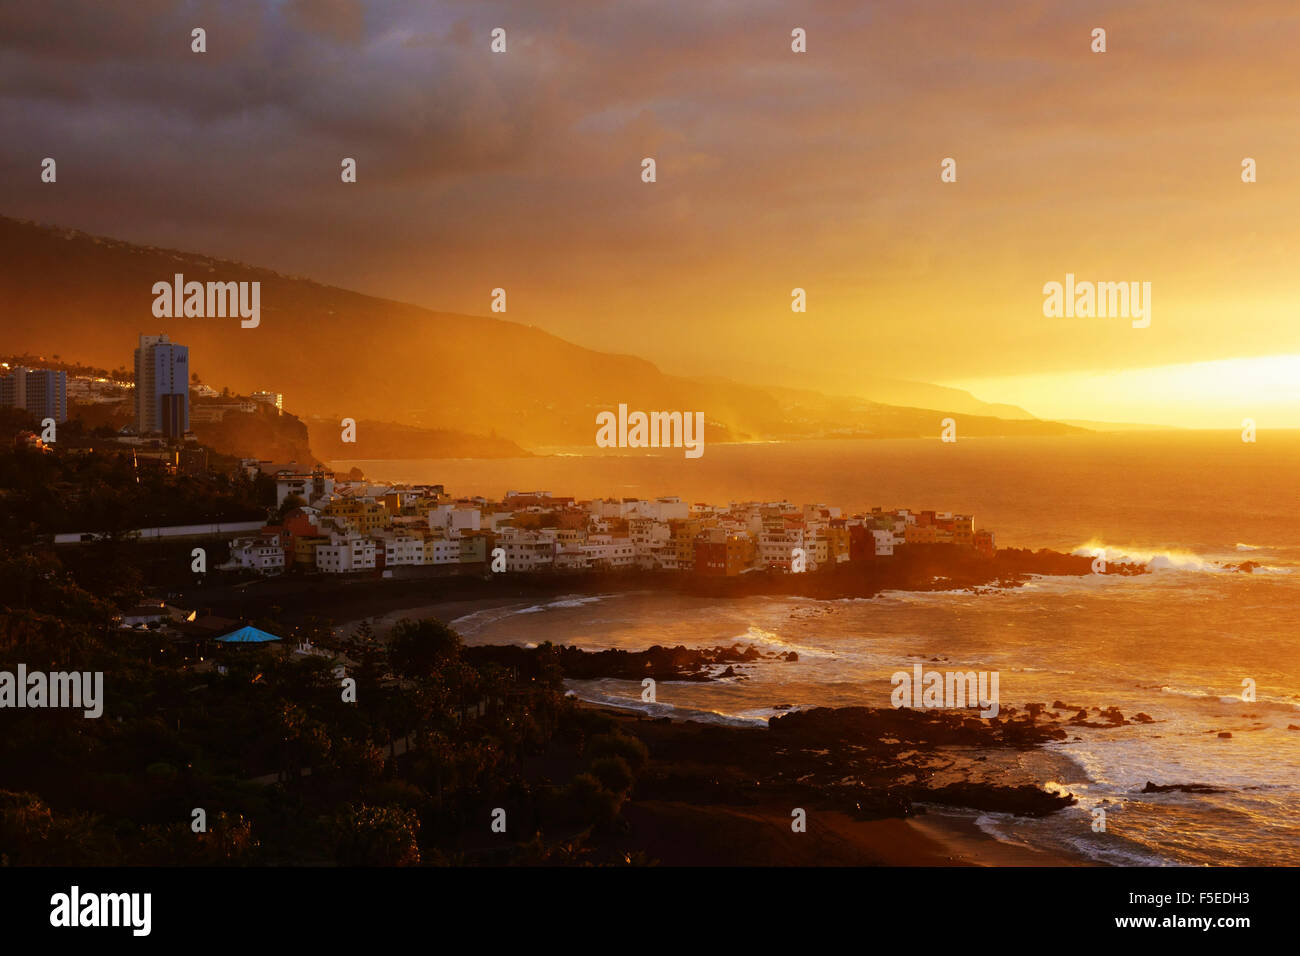 View of Punta Brava and Playa Jardin at sunset, Puerto de la Cruz, Tenerife, Canary Islands, Spain, Atlantic, Europe - Stock Image